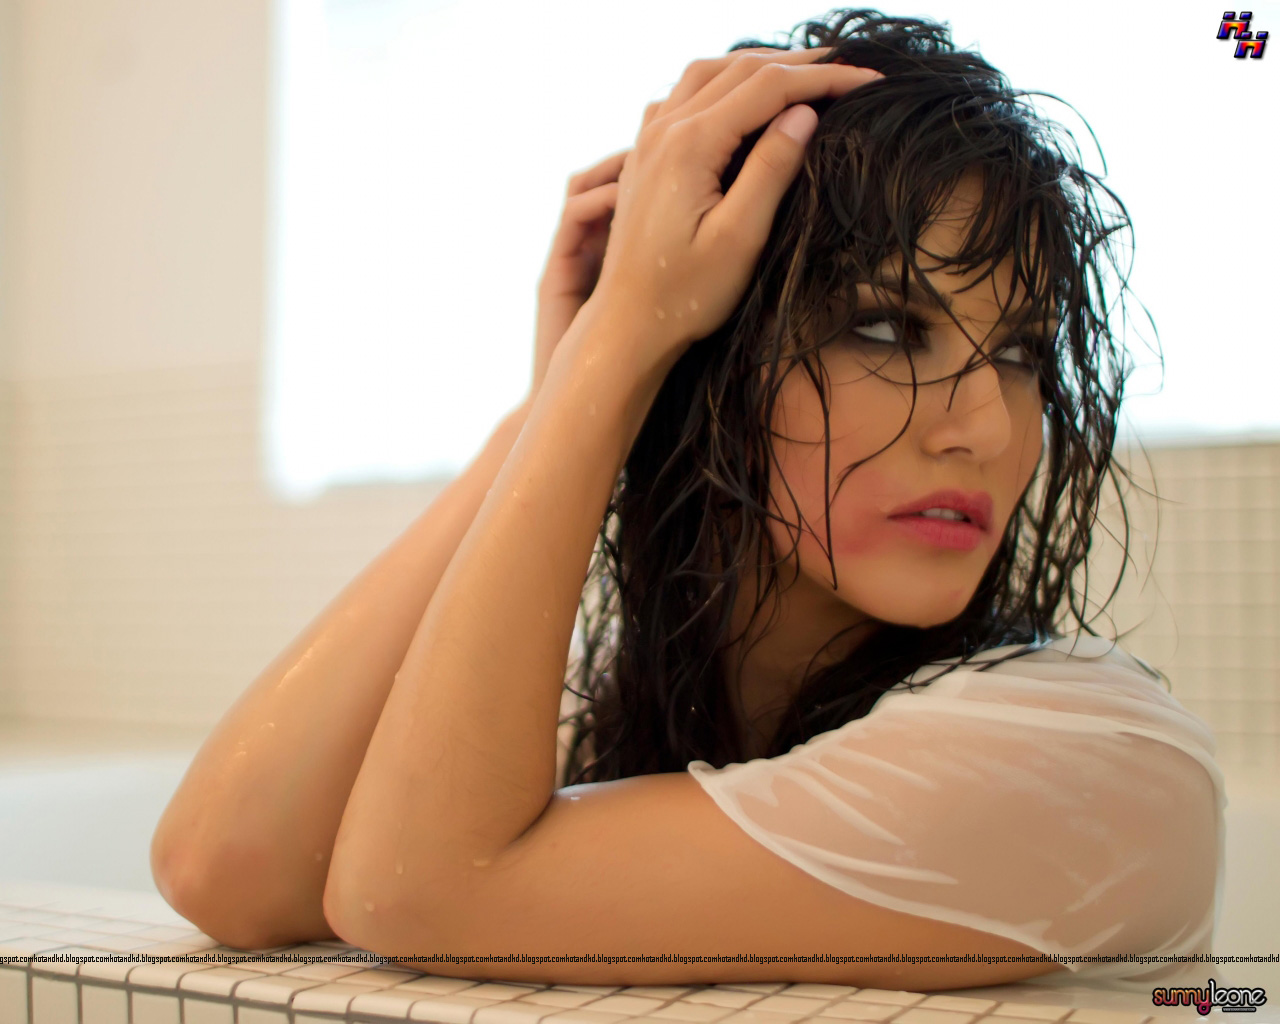 Sunny leone nude wallpapers